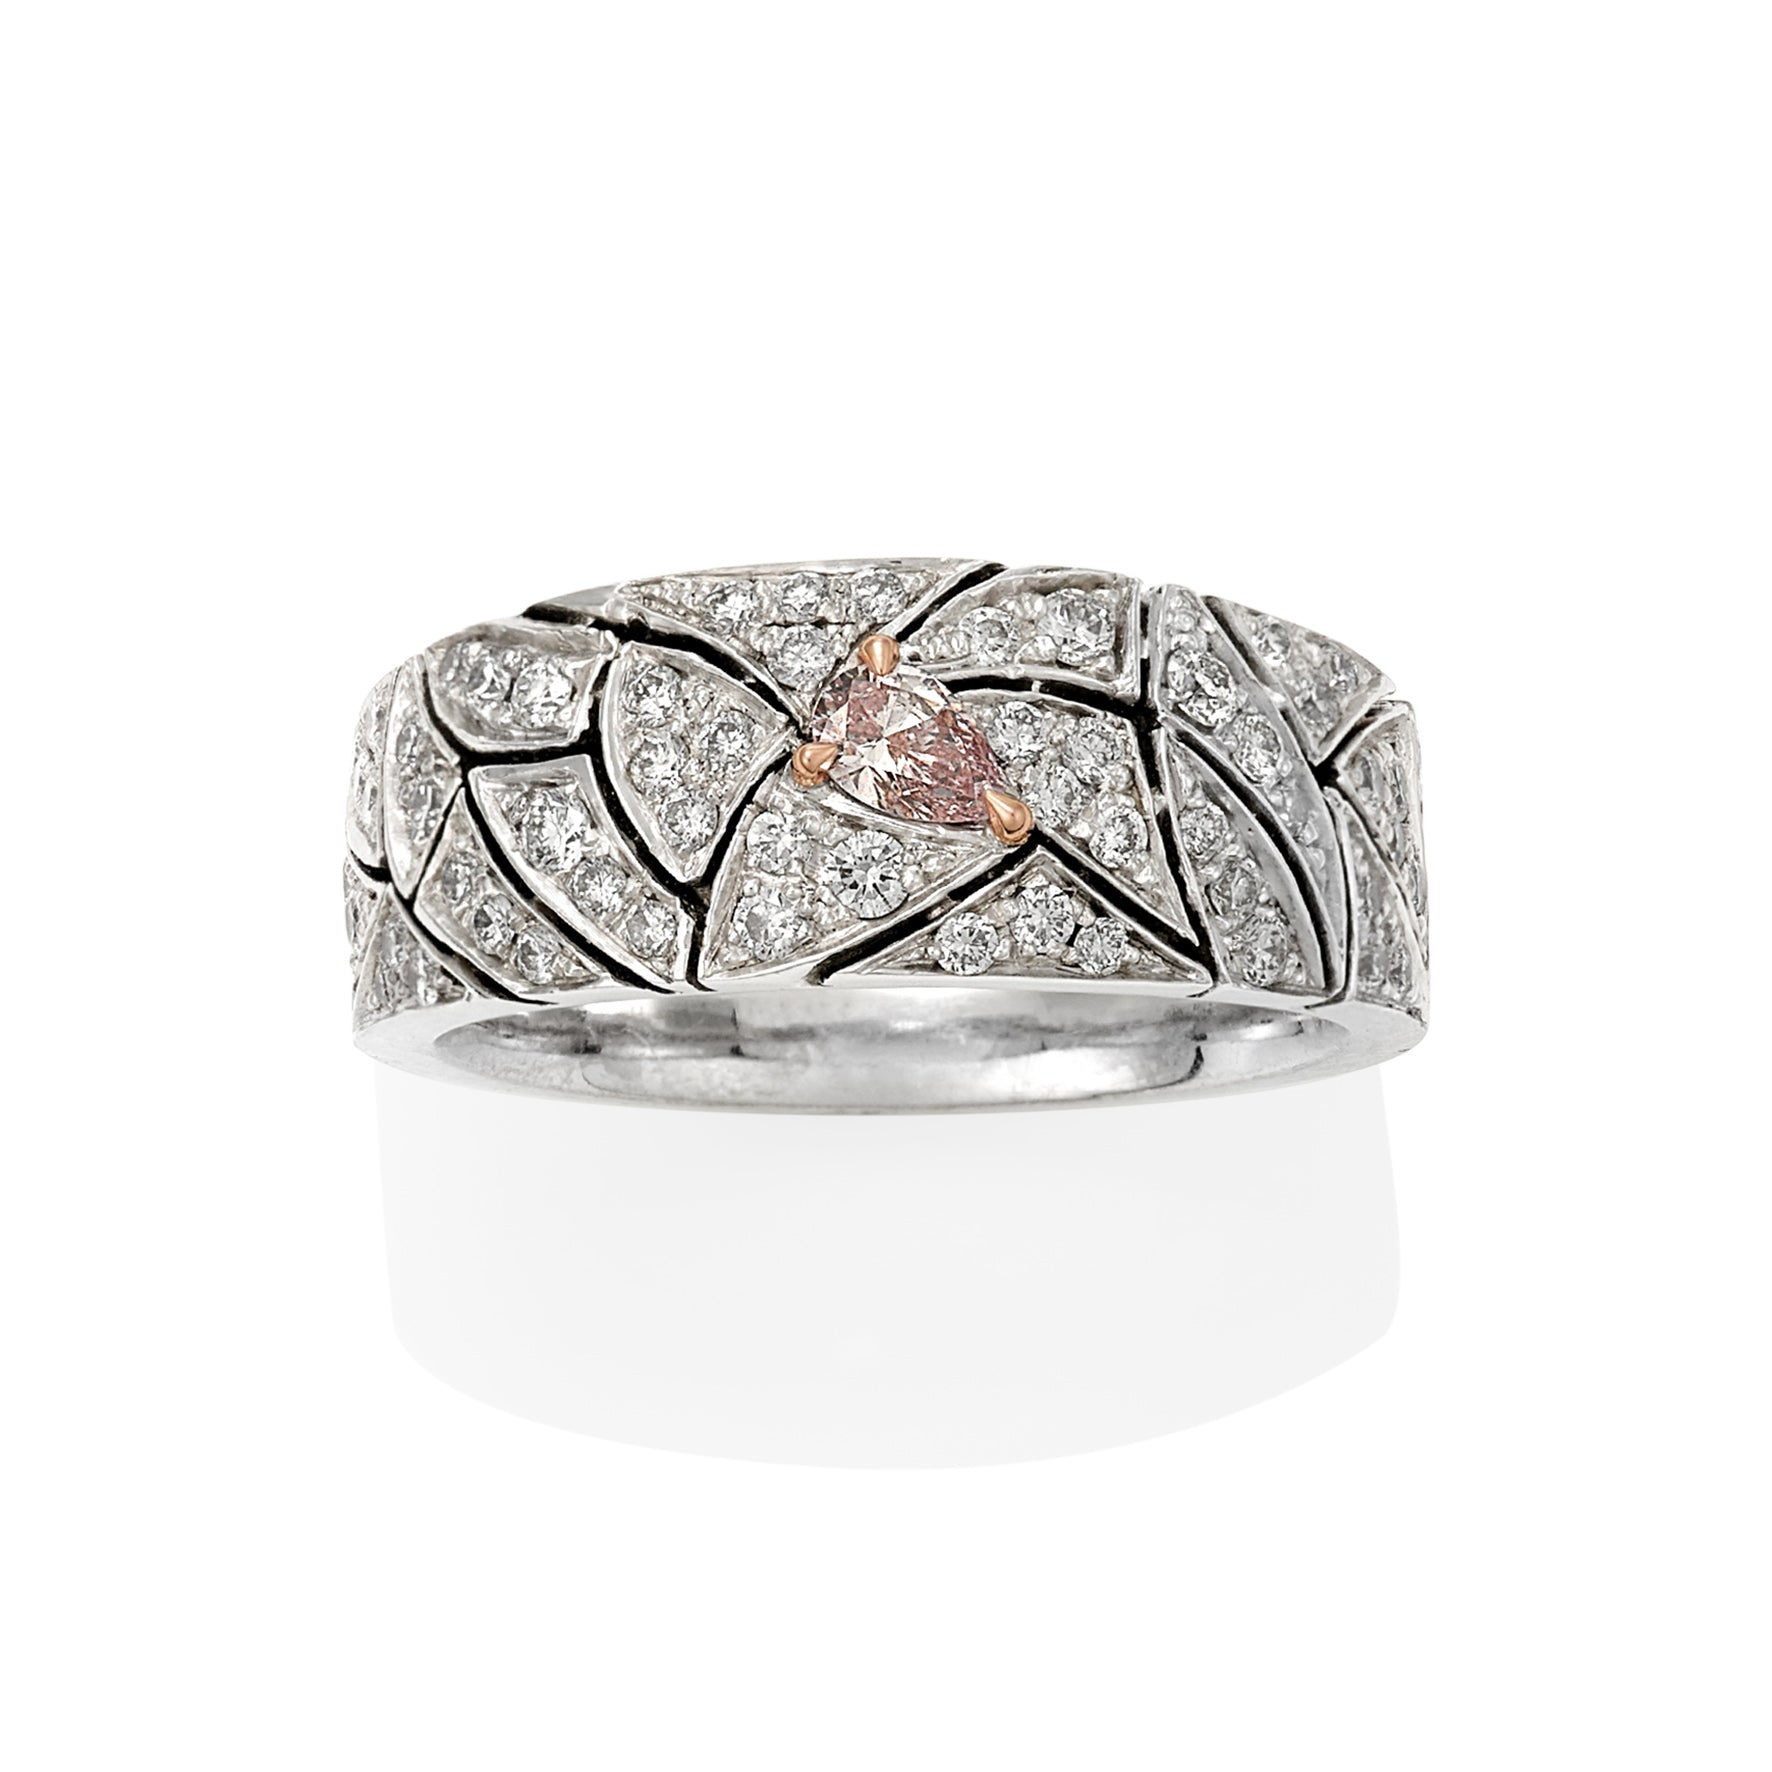 Opera Ring - Pink Diamond Dress Ring